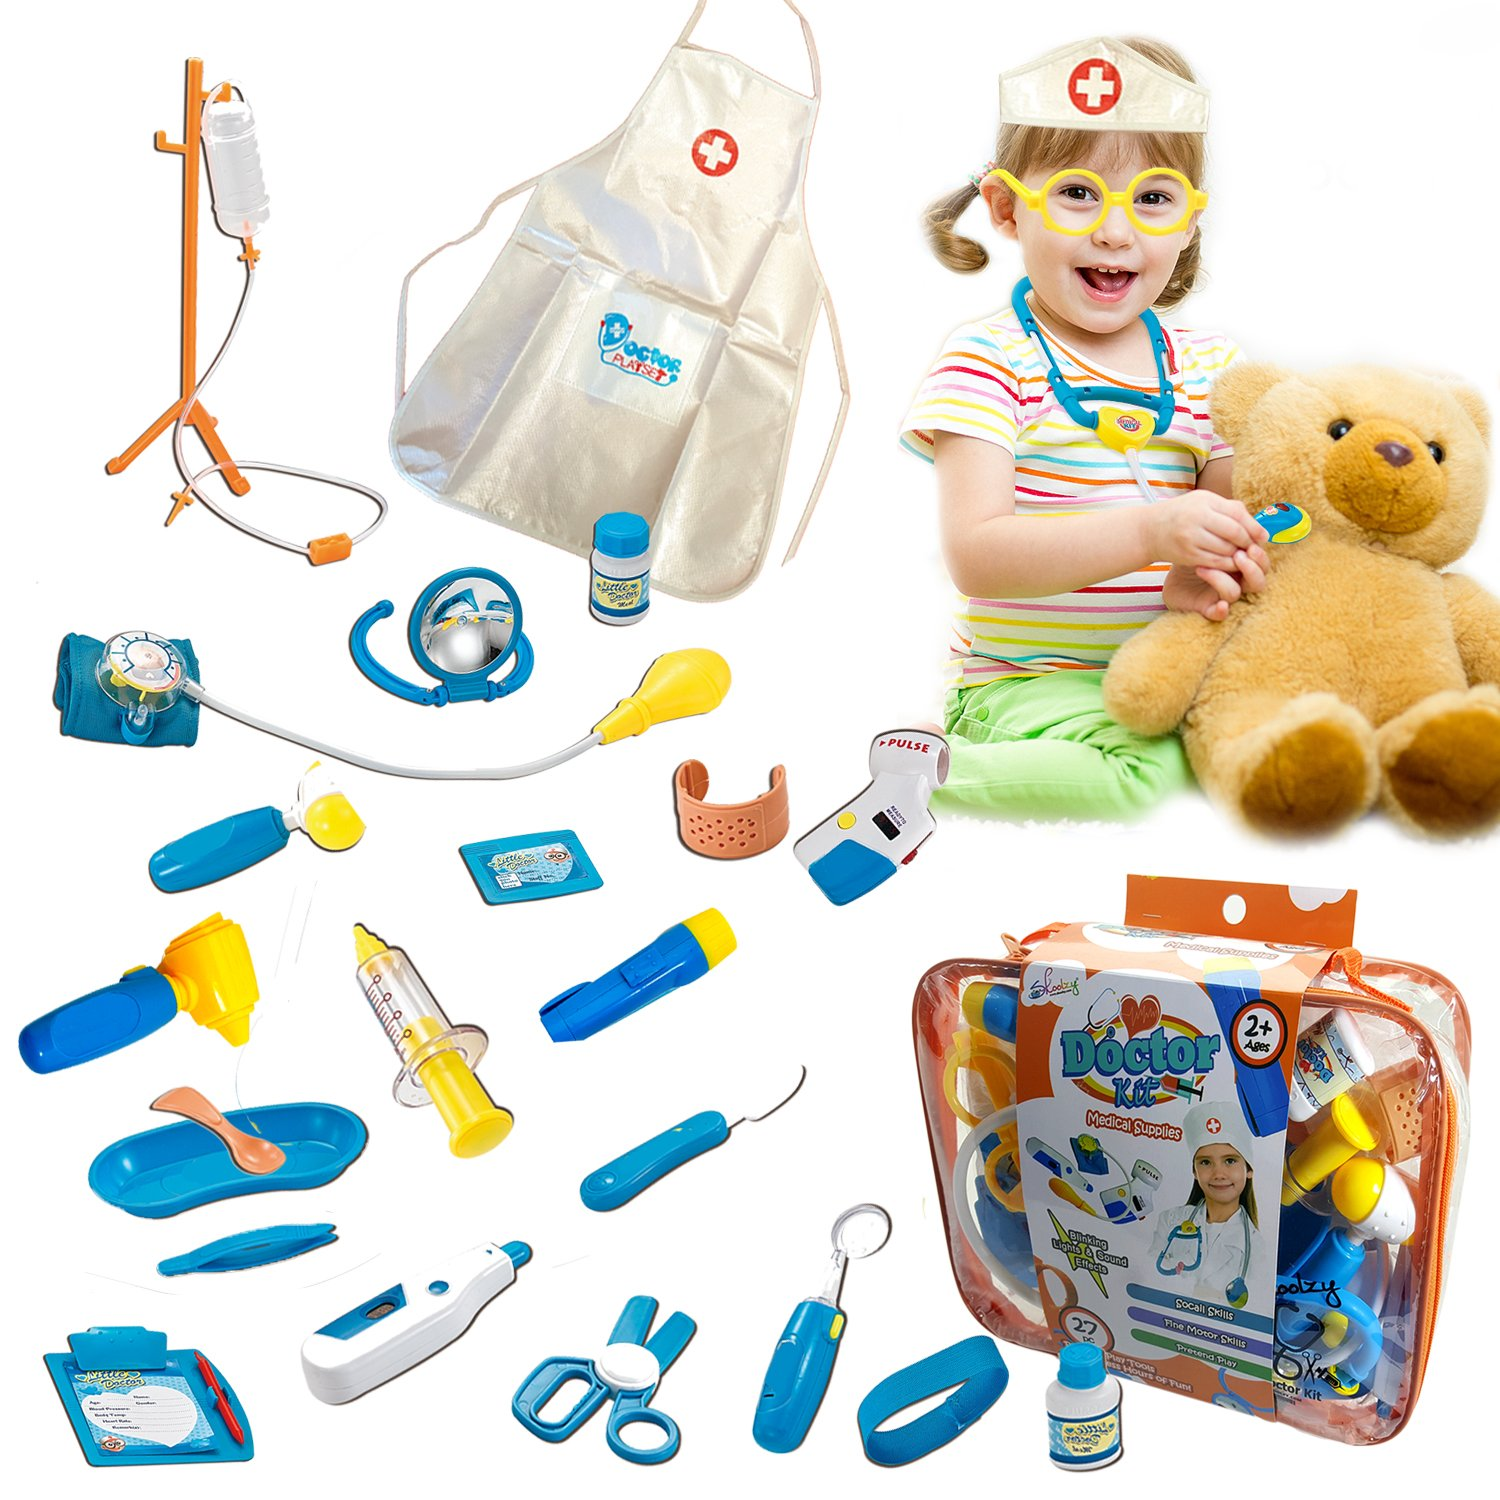 Toy Doctor Kit for Kids - Skoolzy Hospital Pretend Play Set - Toddler Toys for 3 4 5 Year Old Boys and Girls - Montessori Dramatic Play Dr Dress Up Games Sounds & Lights Stethoscope by Skoolzy